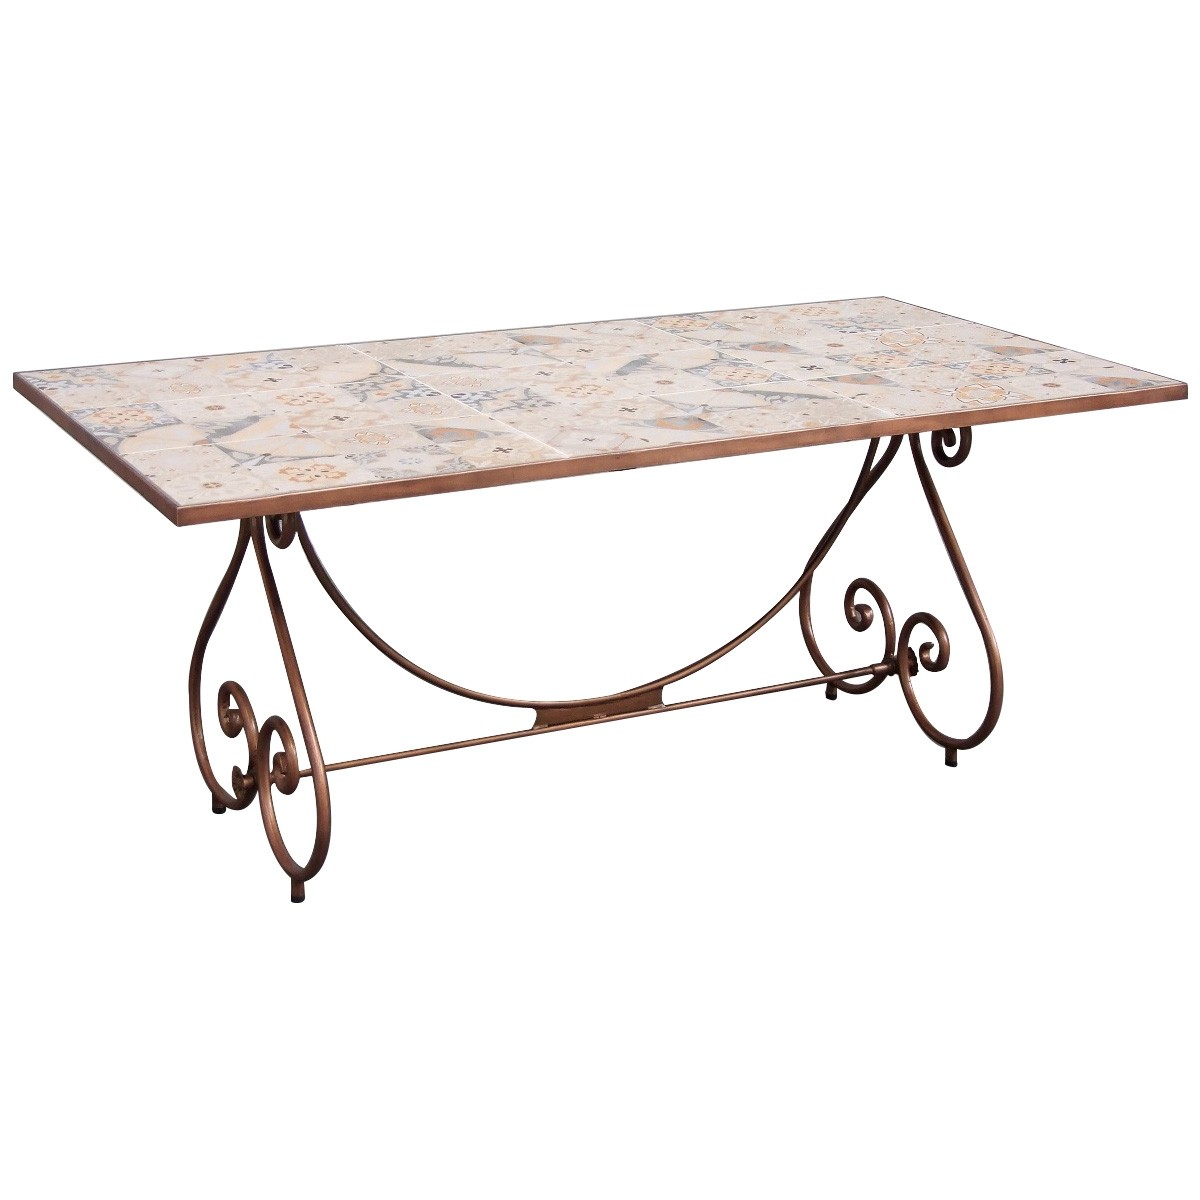 Joyeux Steel Dining Table with Mosaic Tile Top, 182cm